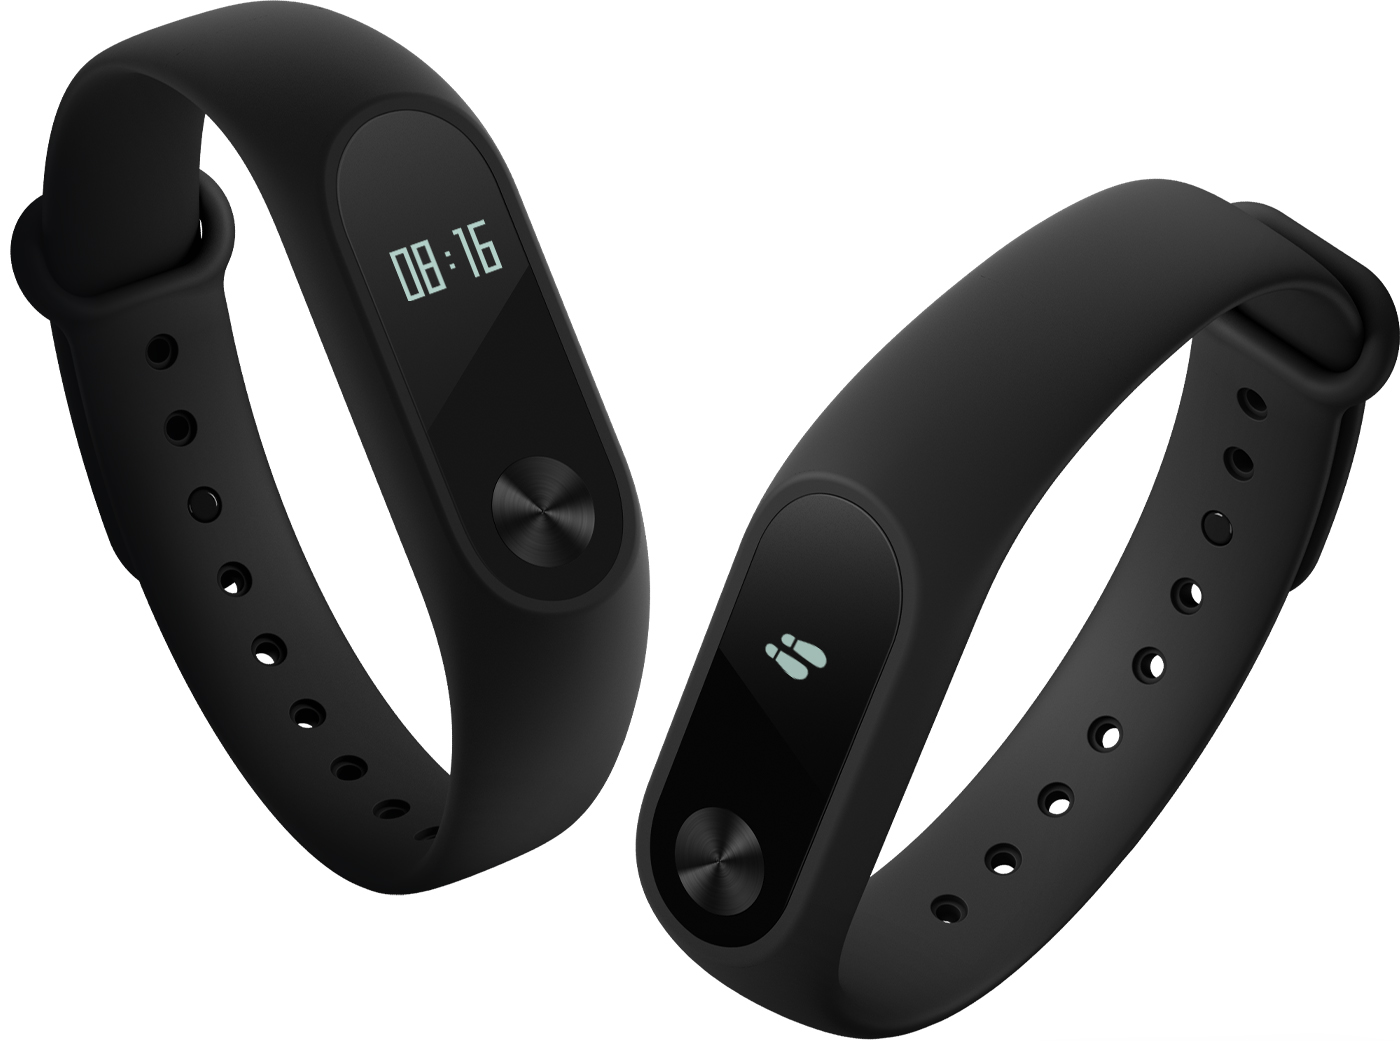 Mi Band 2 - OLED Display, Heart Rate Sensor, 20 Day ...